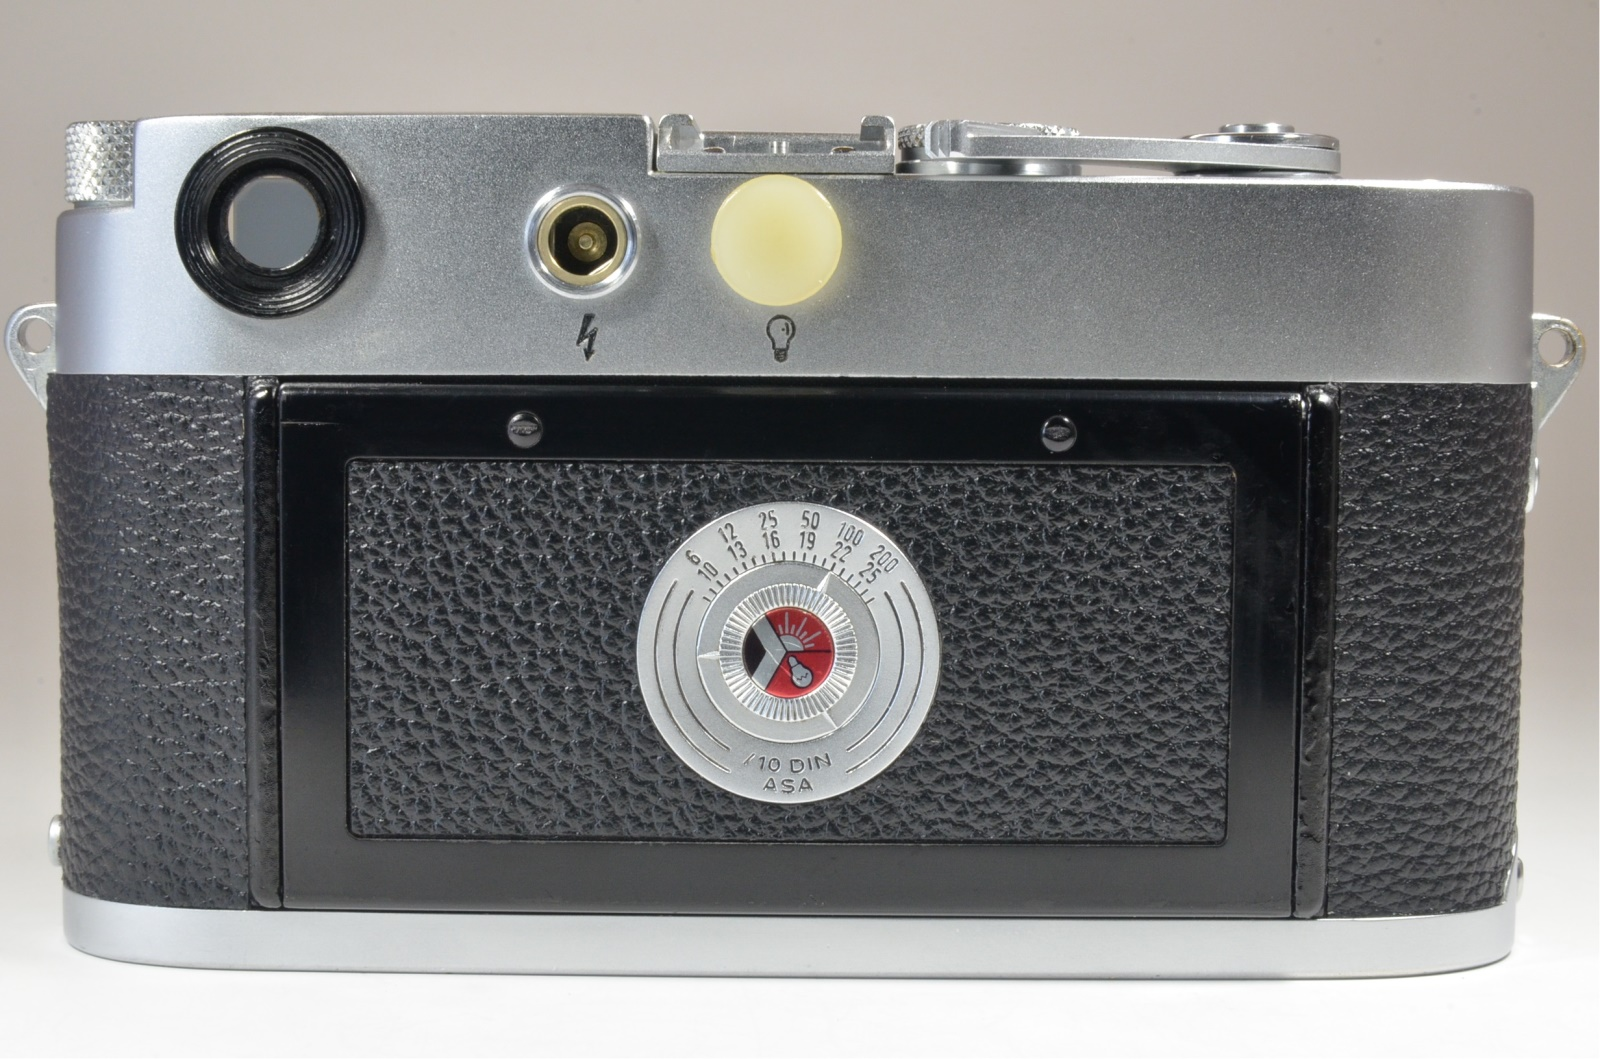 leica m3 double stroke s/n 830567 year 1956 with strap from japan